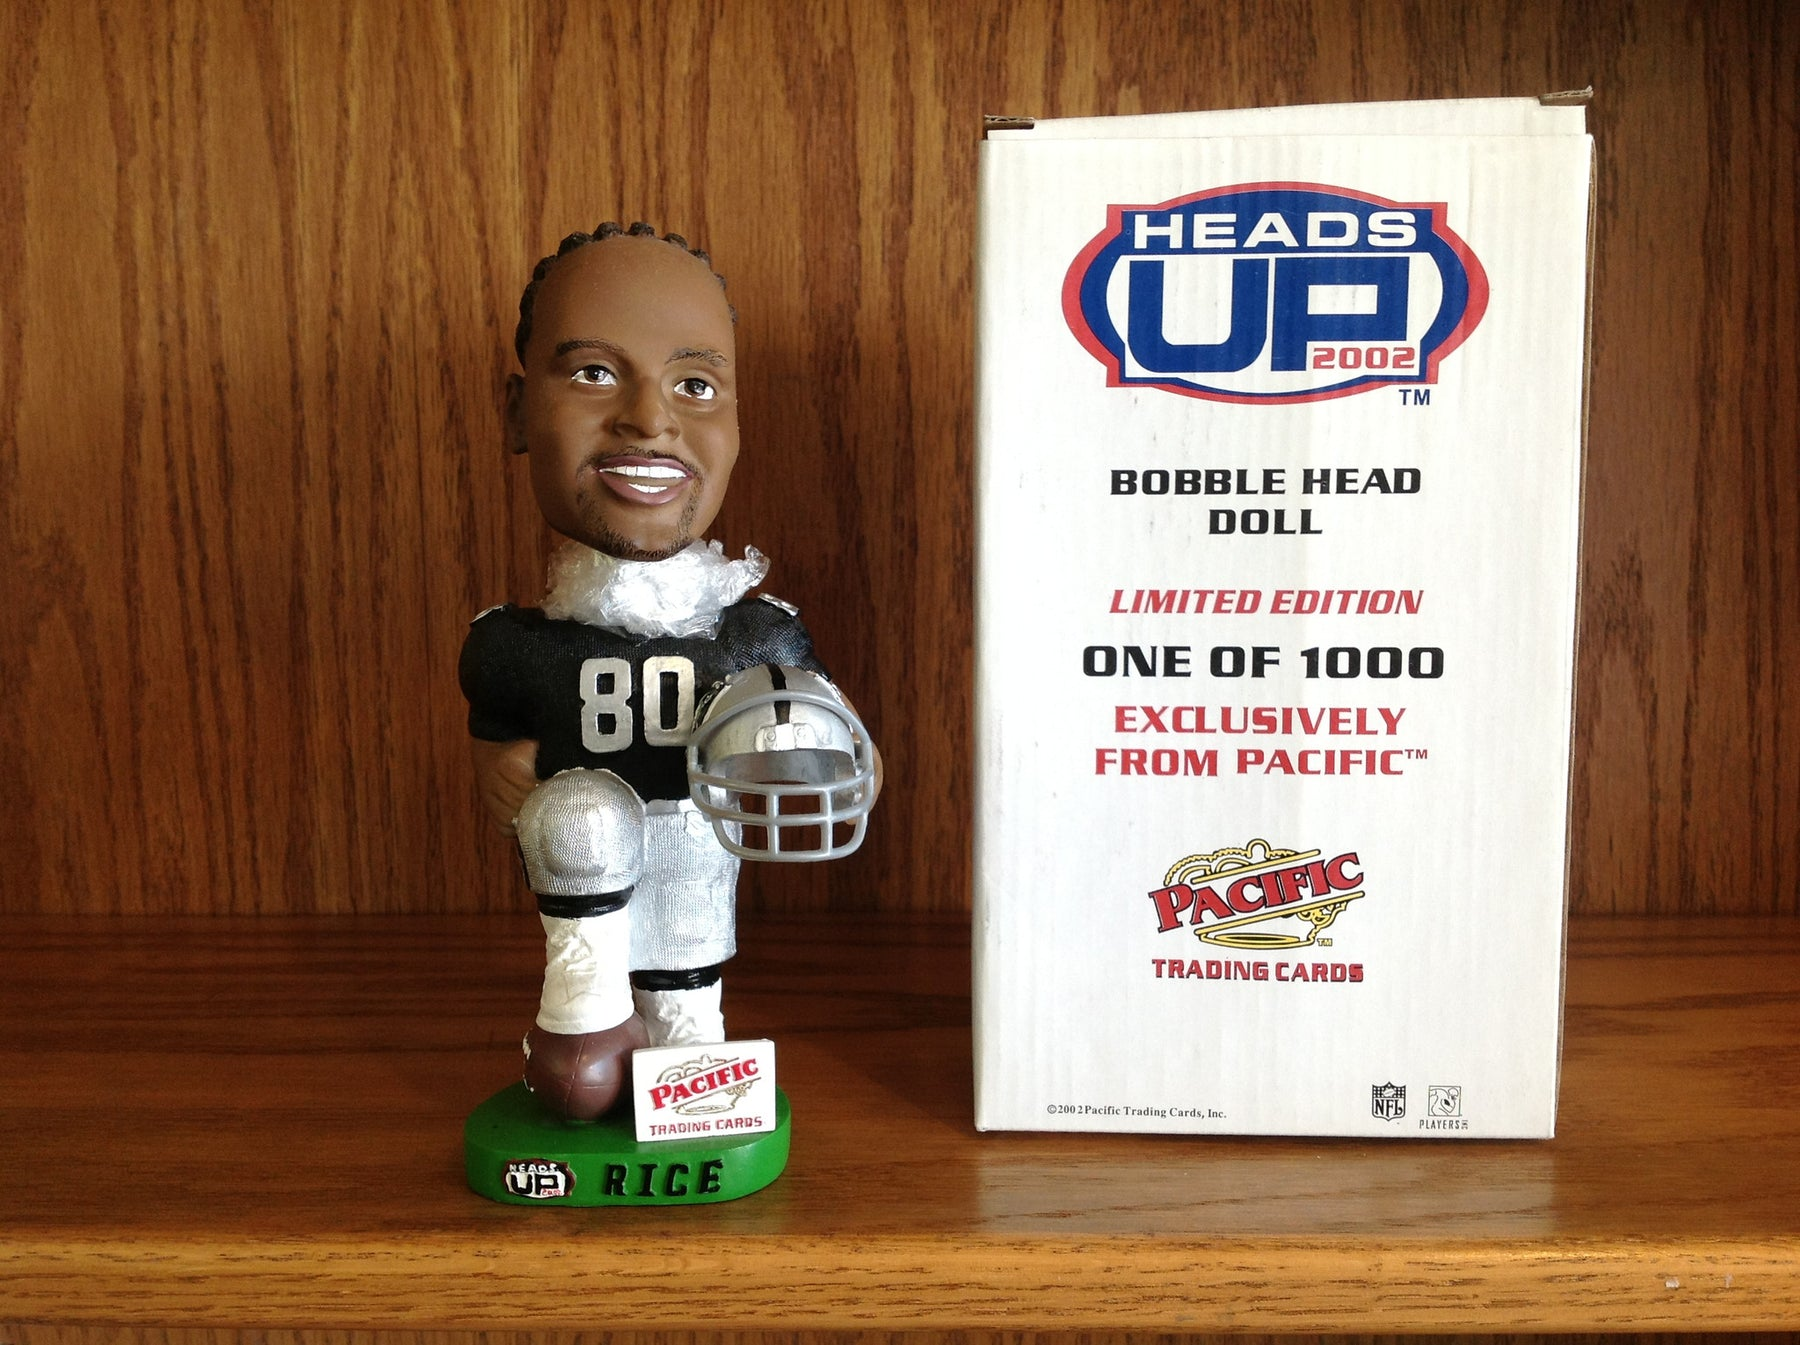 Jerry Rice Bobblehead - BobblesGalore